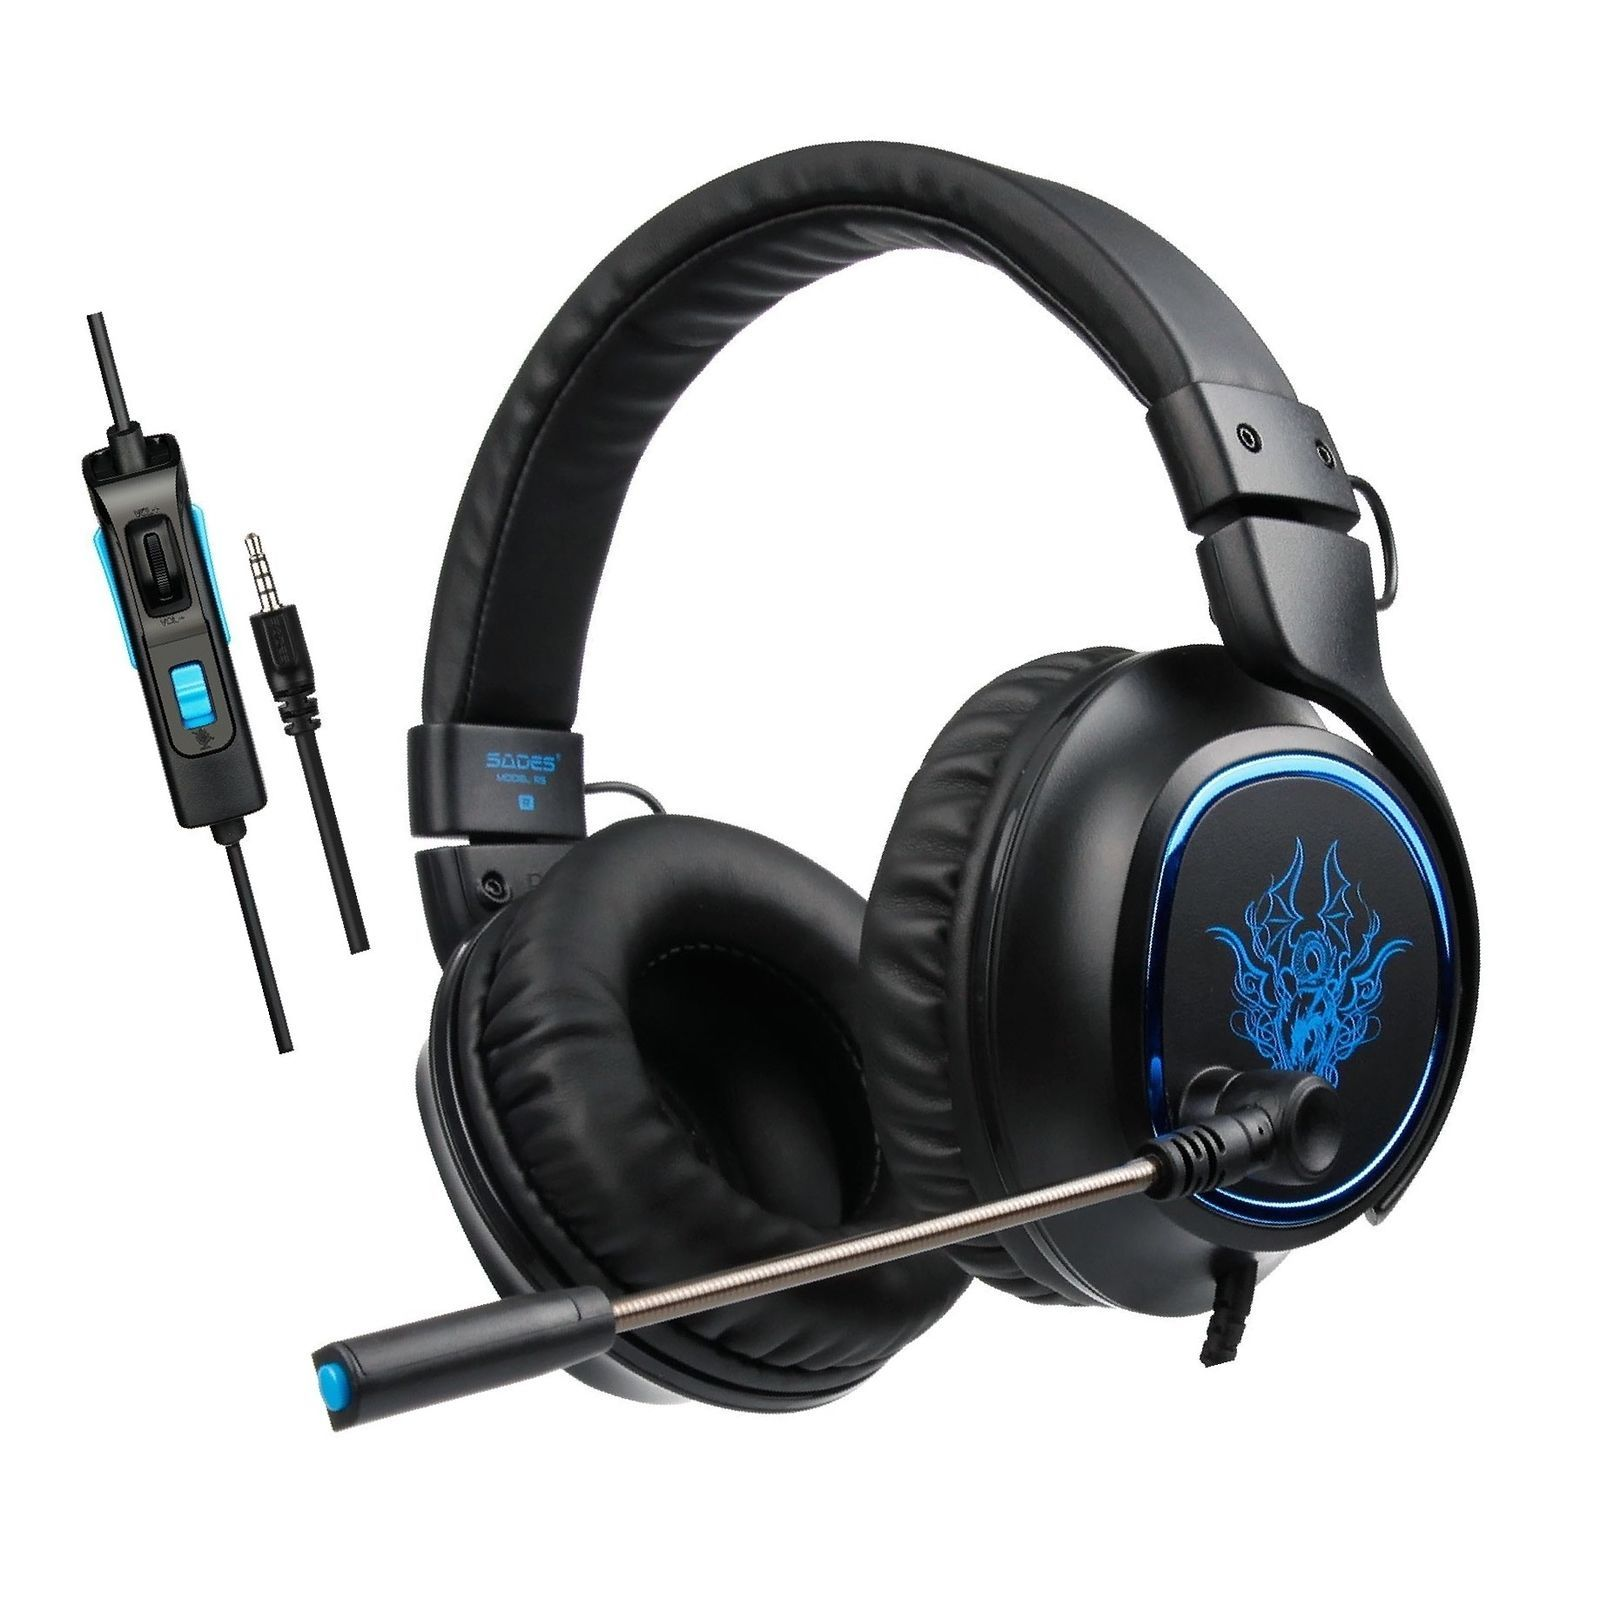 Over Ear Gaming Headset, Sades R5 PS4 New Xbox One PC Gaming Headphones, Bass...